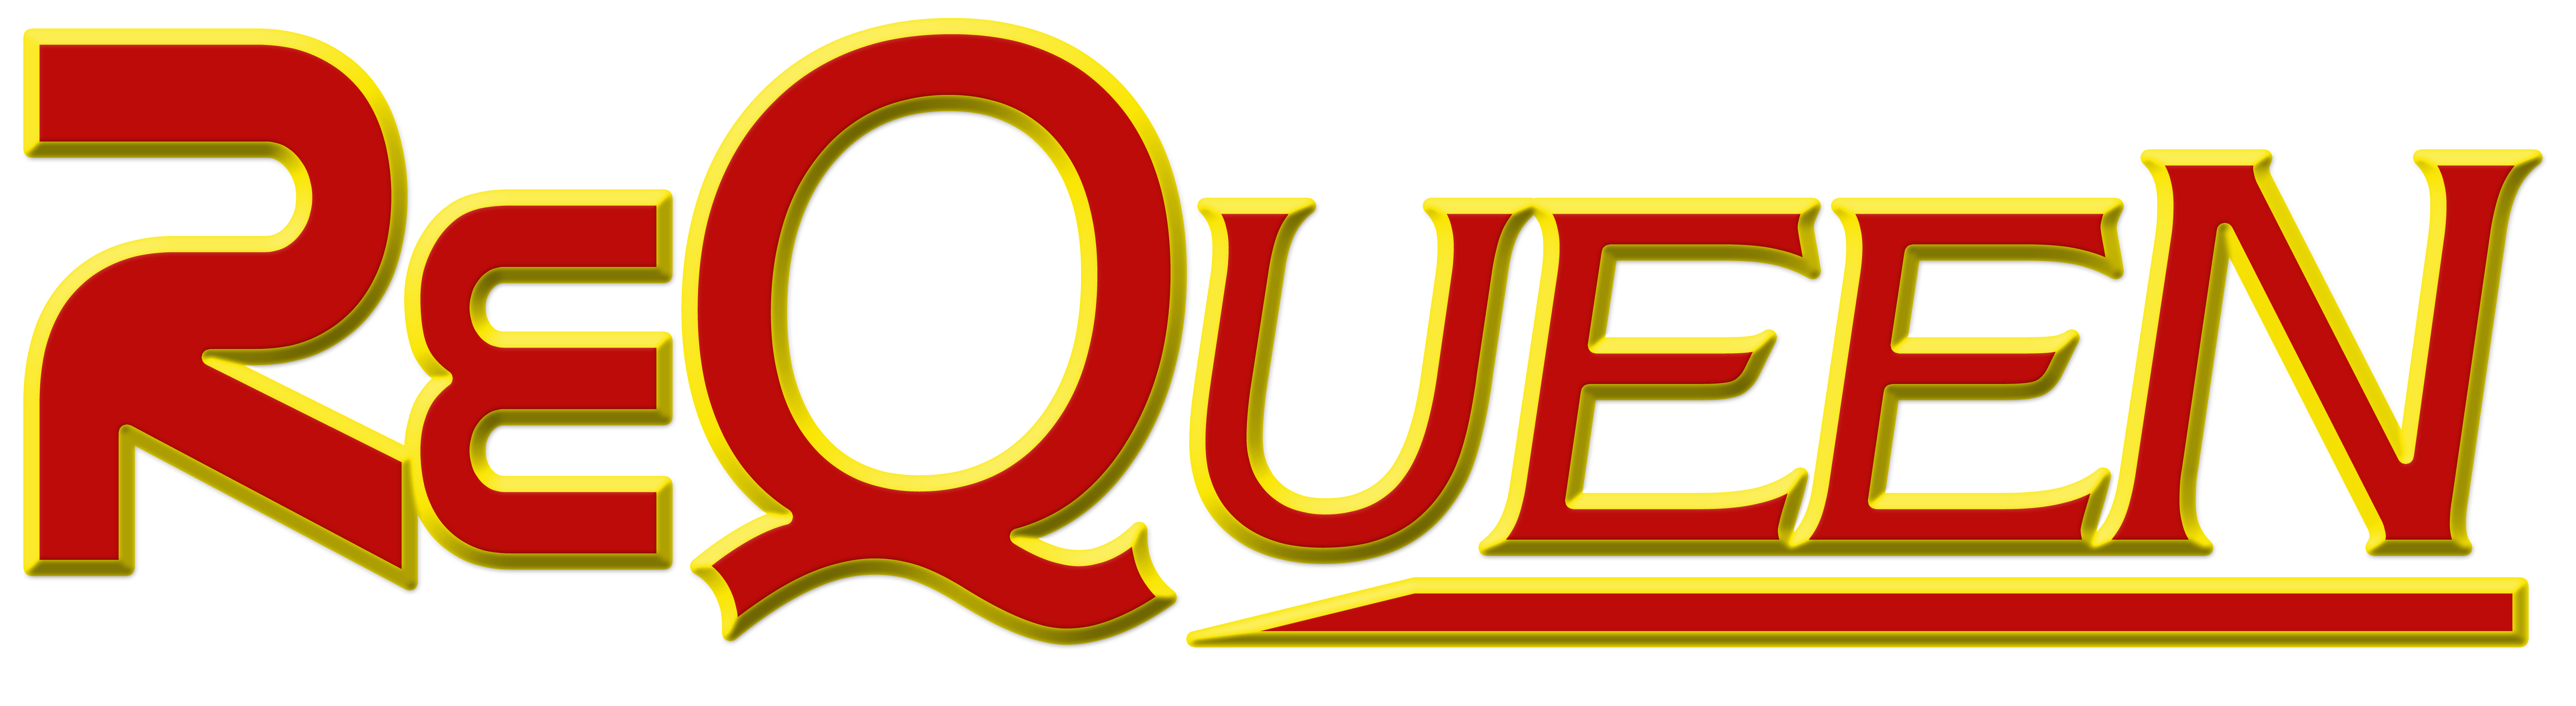 REQUEEN - Queen Tribute Show from Rome, Italy